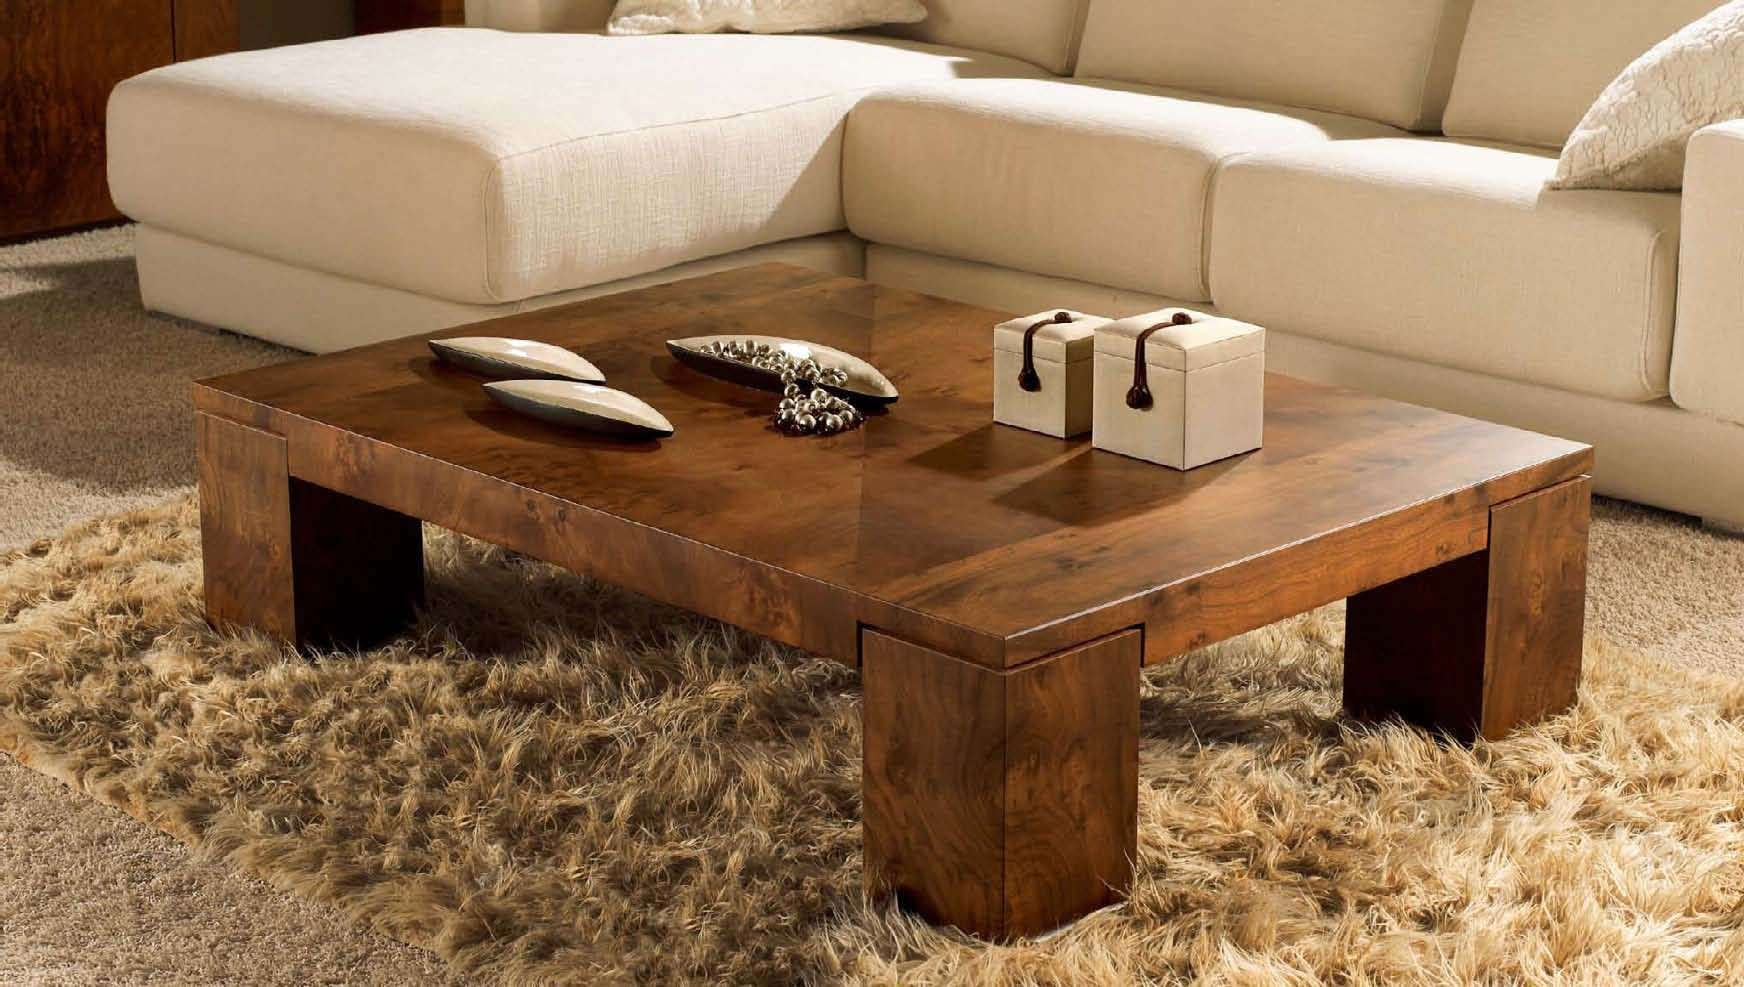 Ideas Of Unique Wood Coffee Tables – Matt And Jentry Home Design Throughout Well Liked Chunky Rustic Coffee Tables (View 7 of 20)